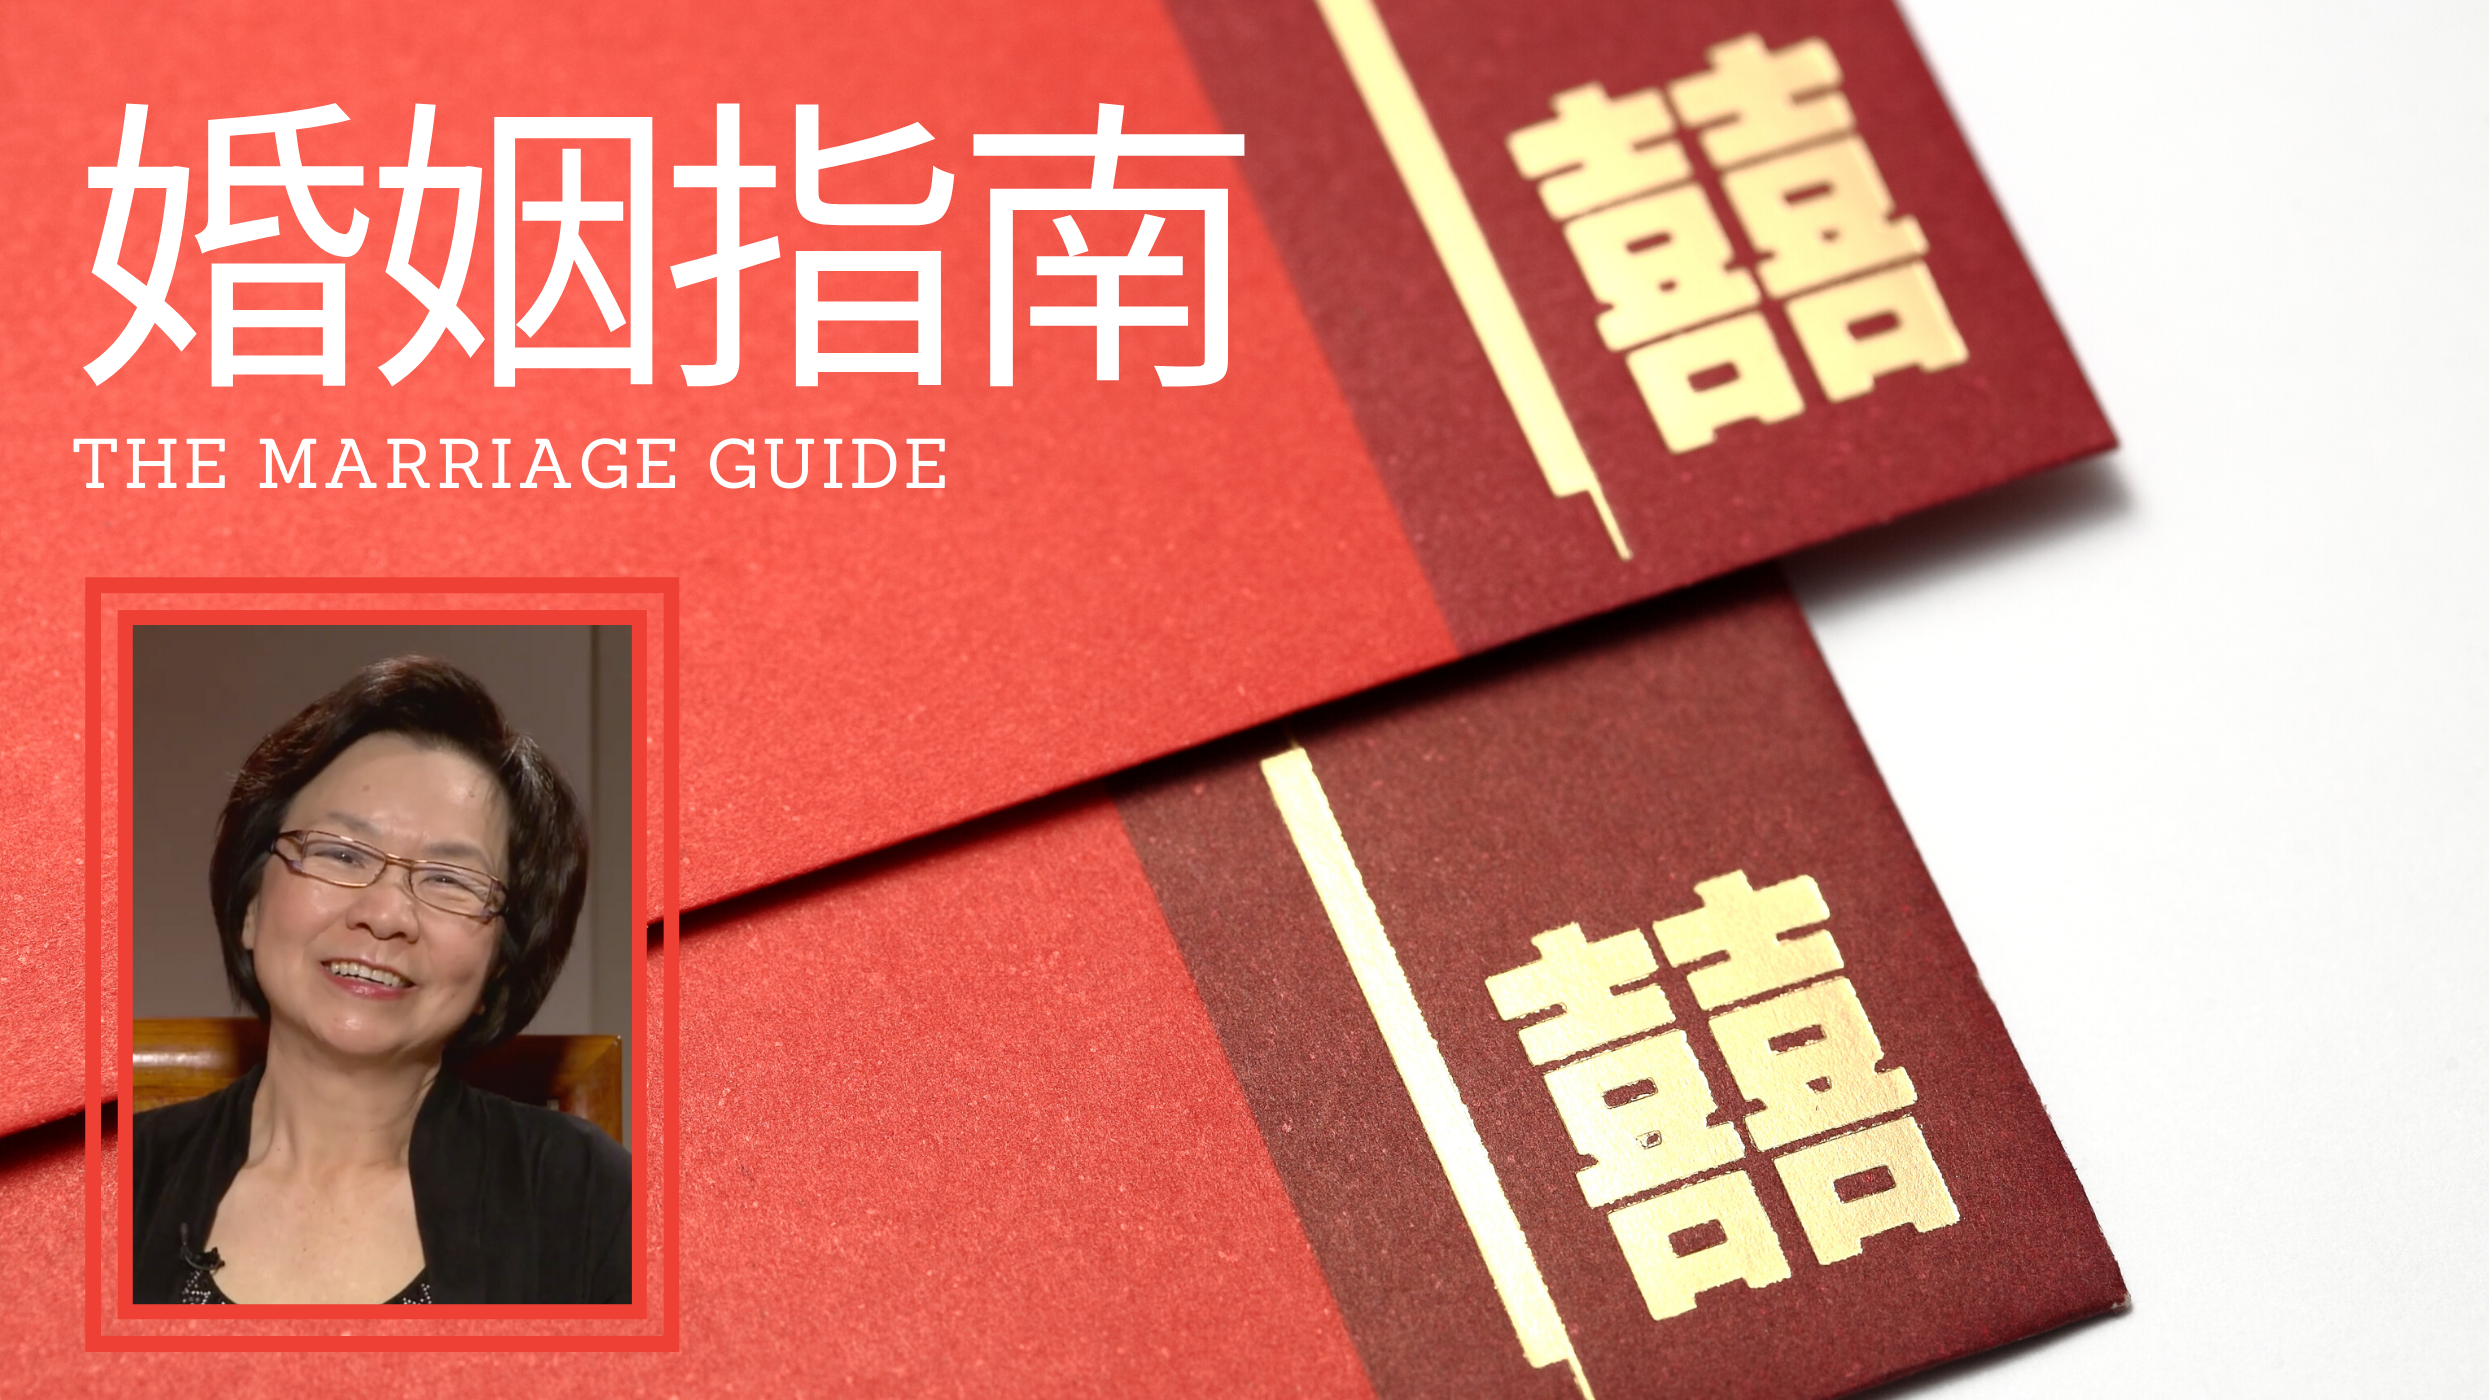 婚姻指南 The Marriage Guide